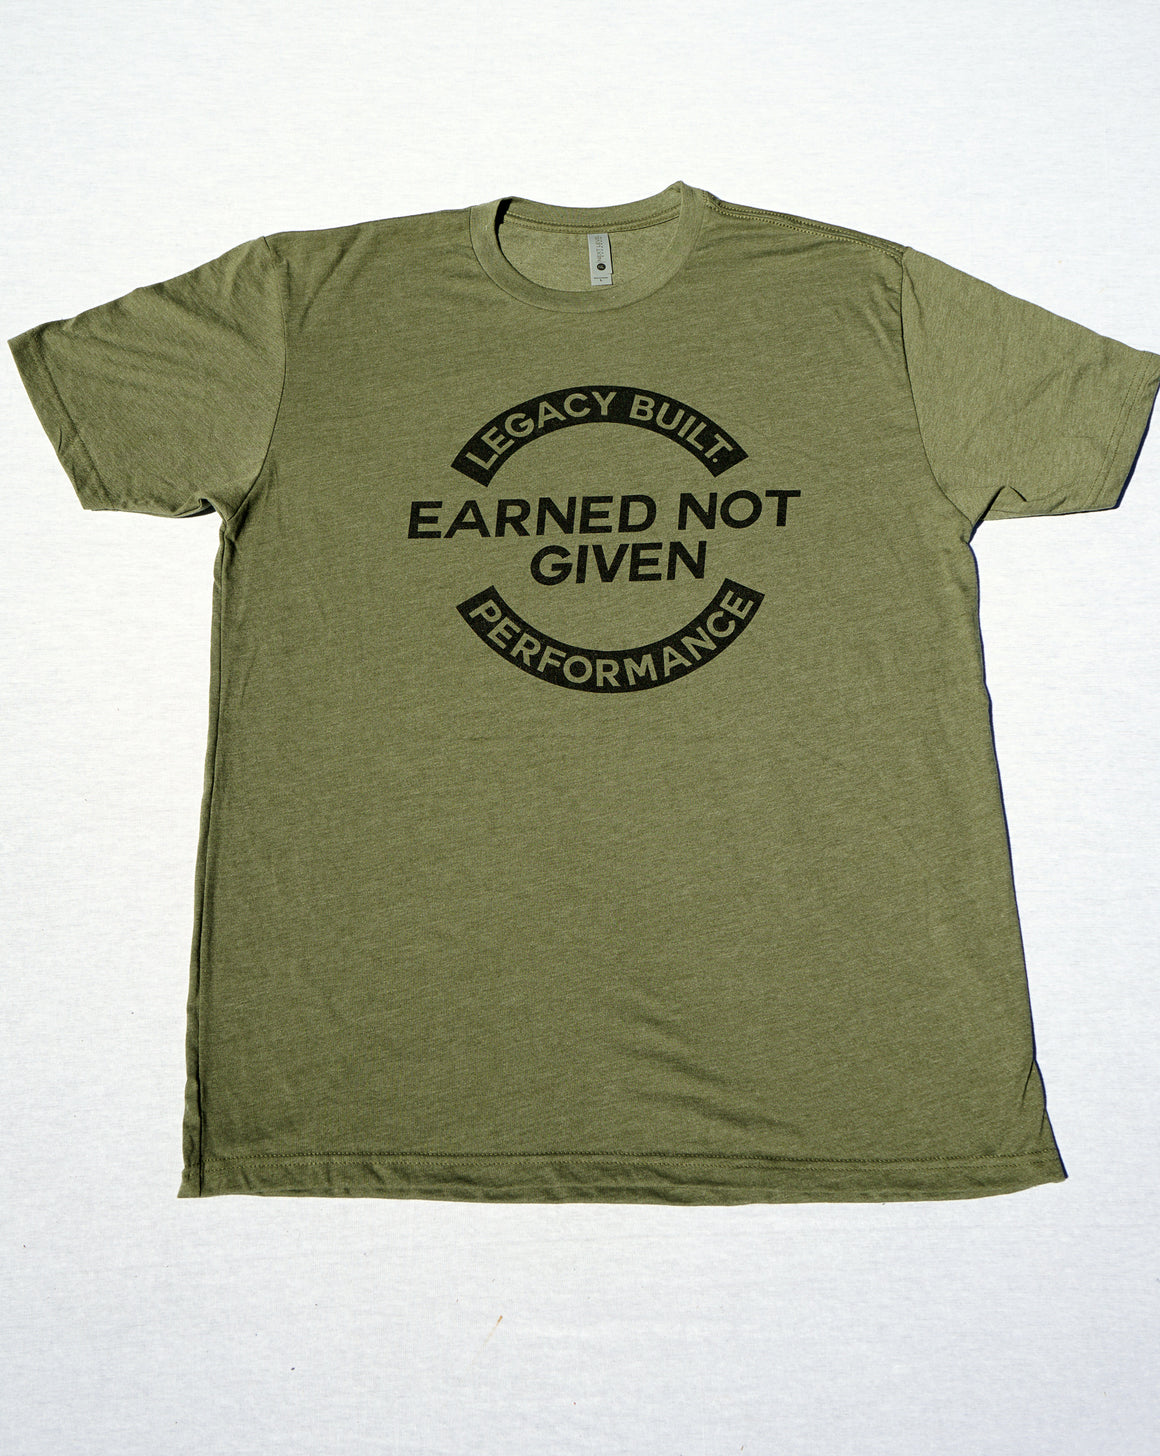 EARNED NOT GIVEN TEE - MILITARY GREEN